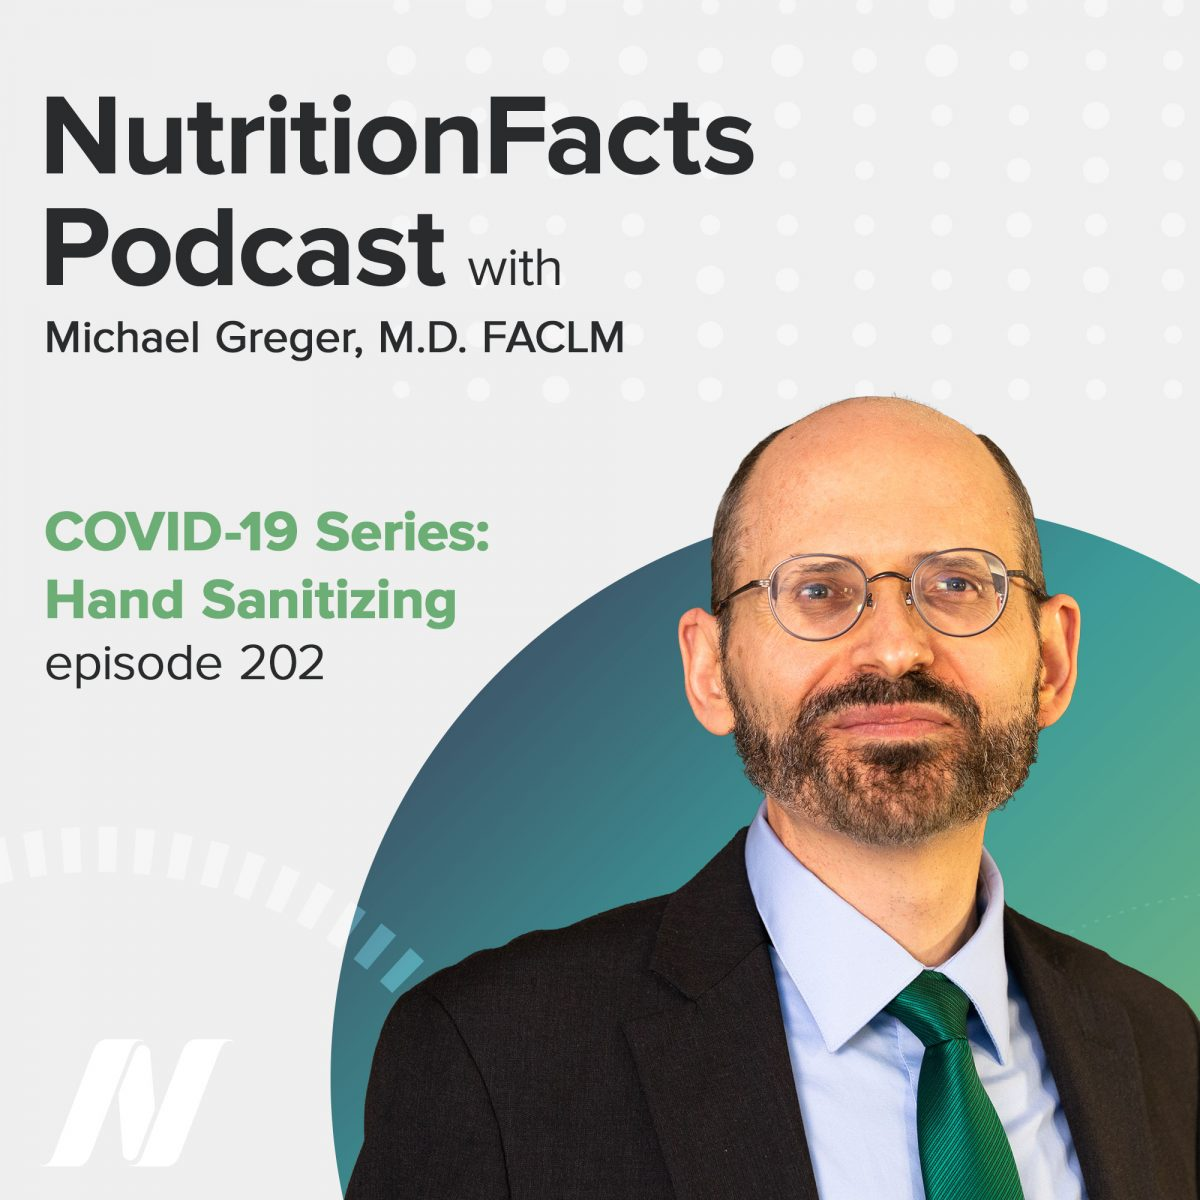 COVID-19 Series: Hand Sanitizing   NutritionFacts.org